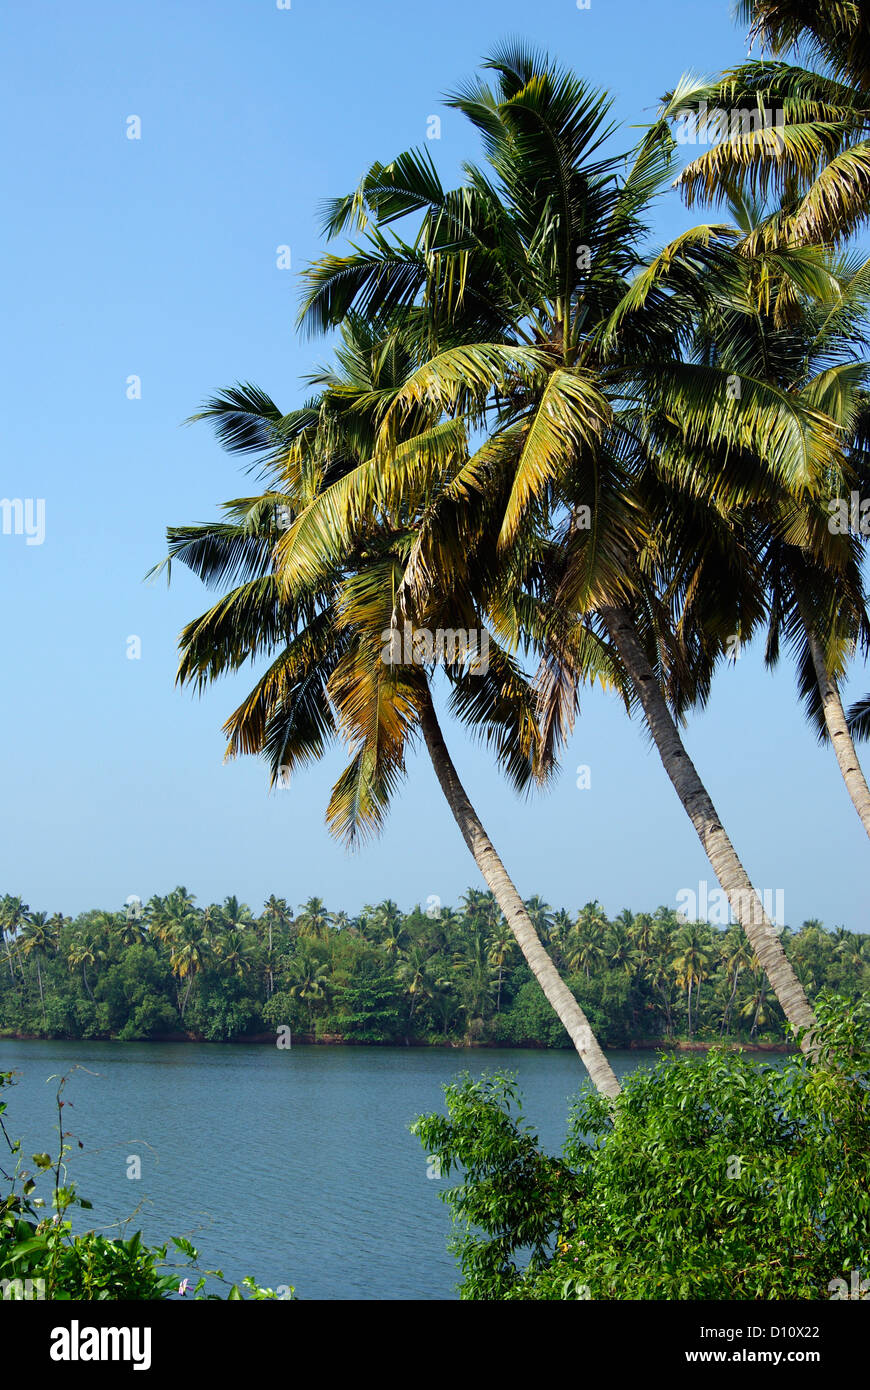 Coconut Palm trees Landscape and Kerala Backwaters scenery in South India - Stock Image